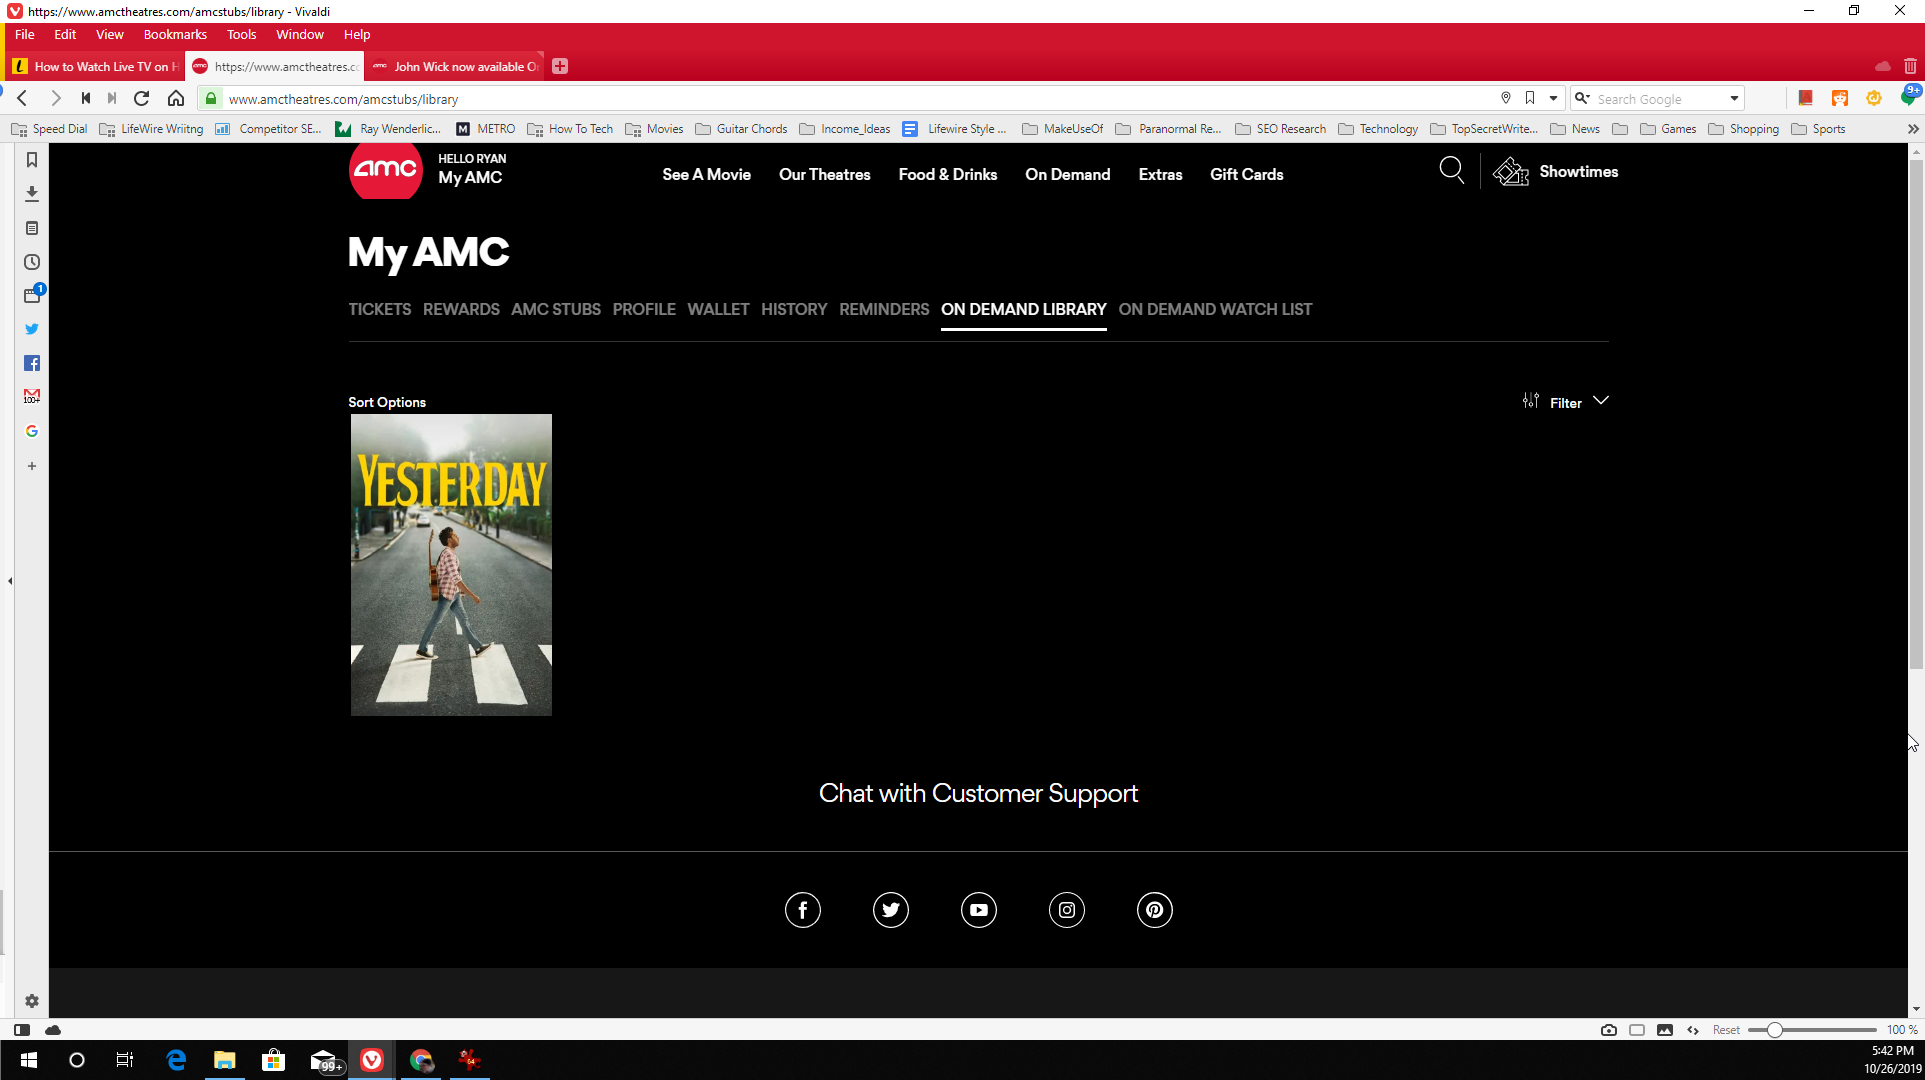 Playing a movie on AMC Theatres Movies on Demand